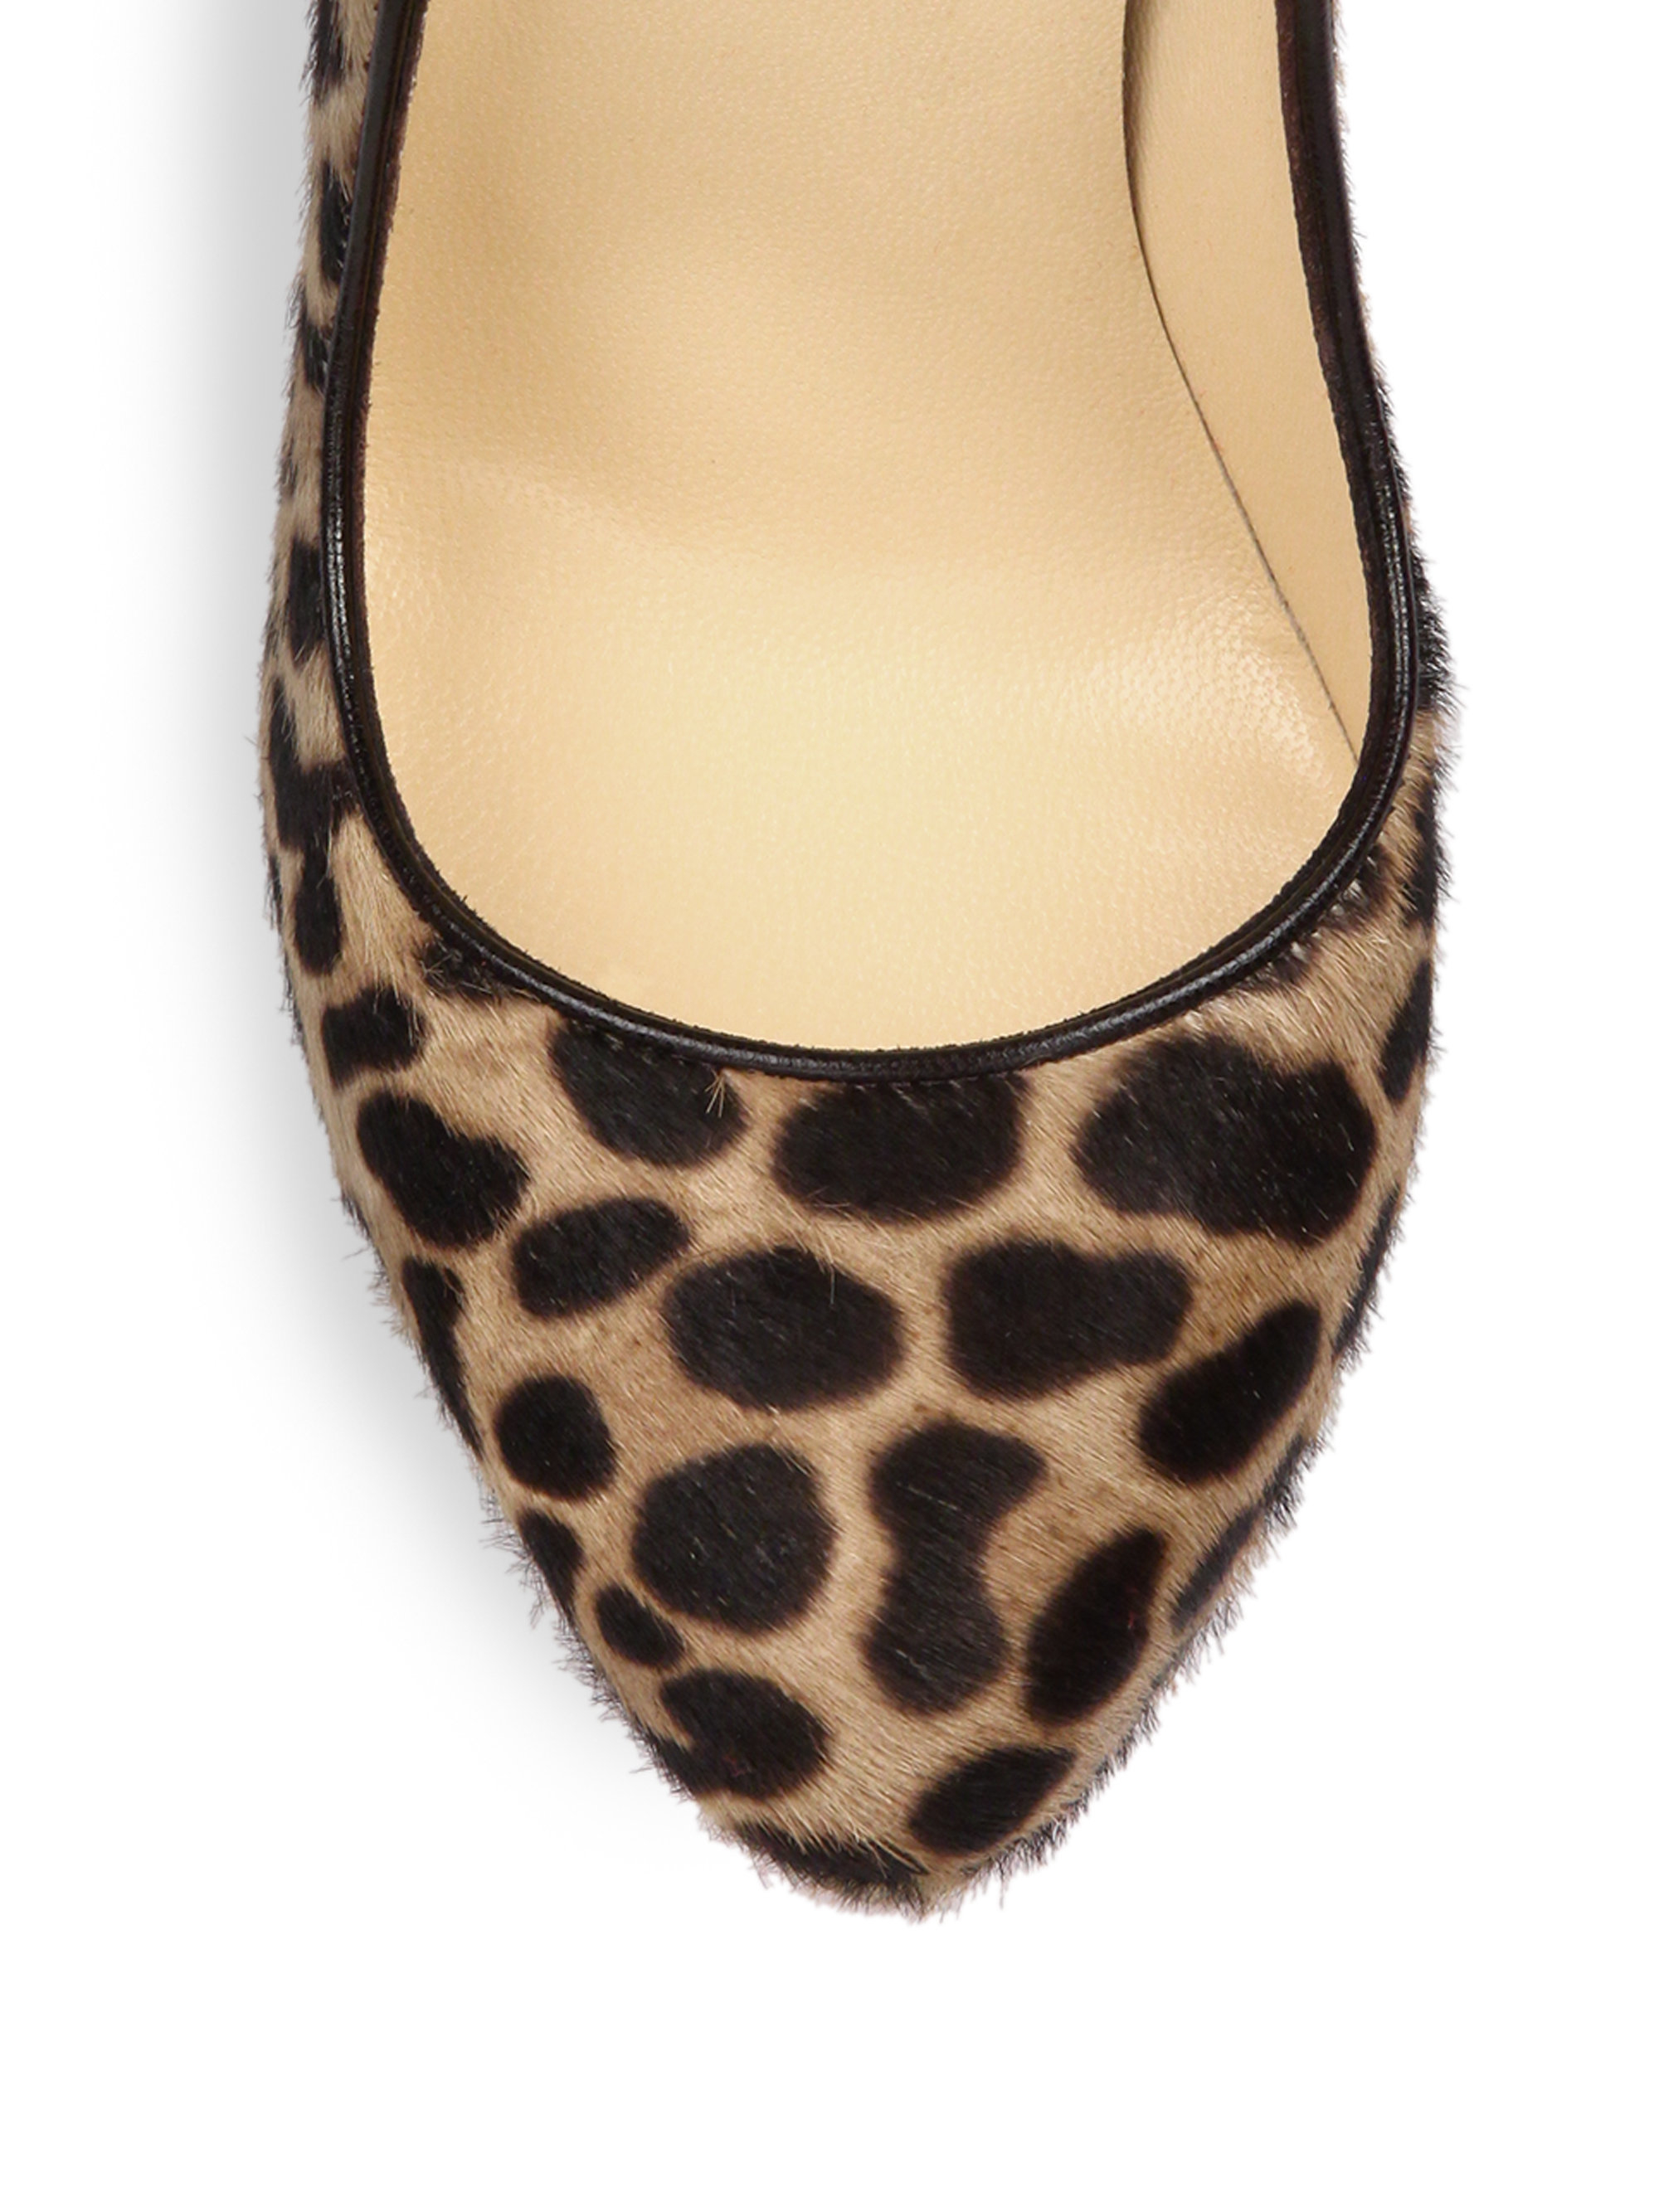 christian louboutin loafer pumps Brown and beige ponyhair animal ...